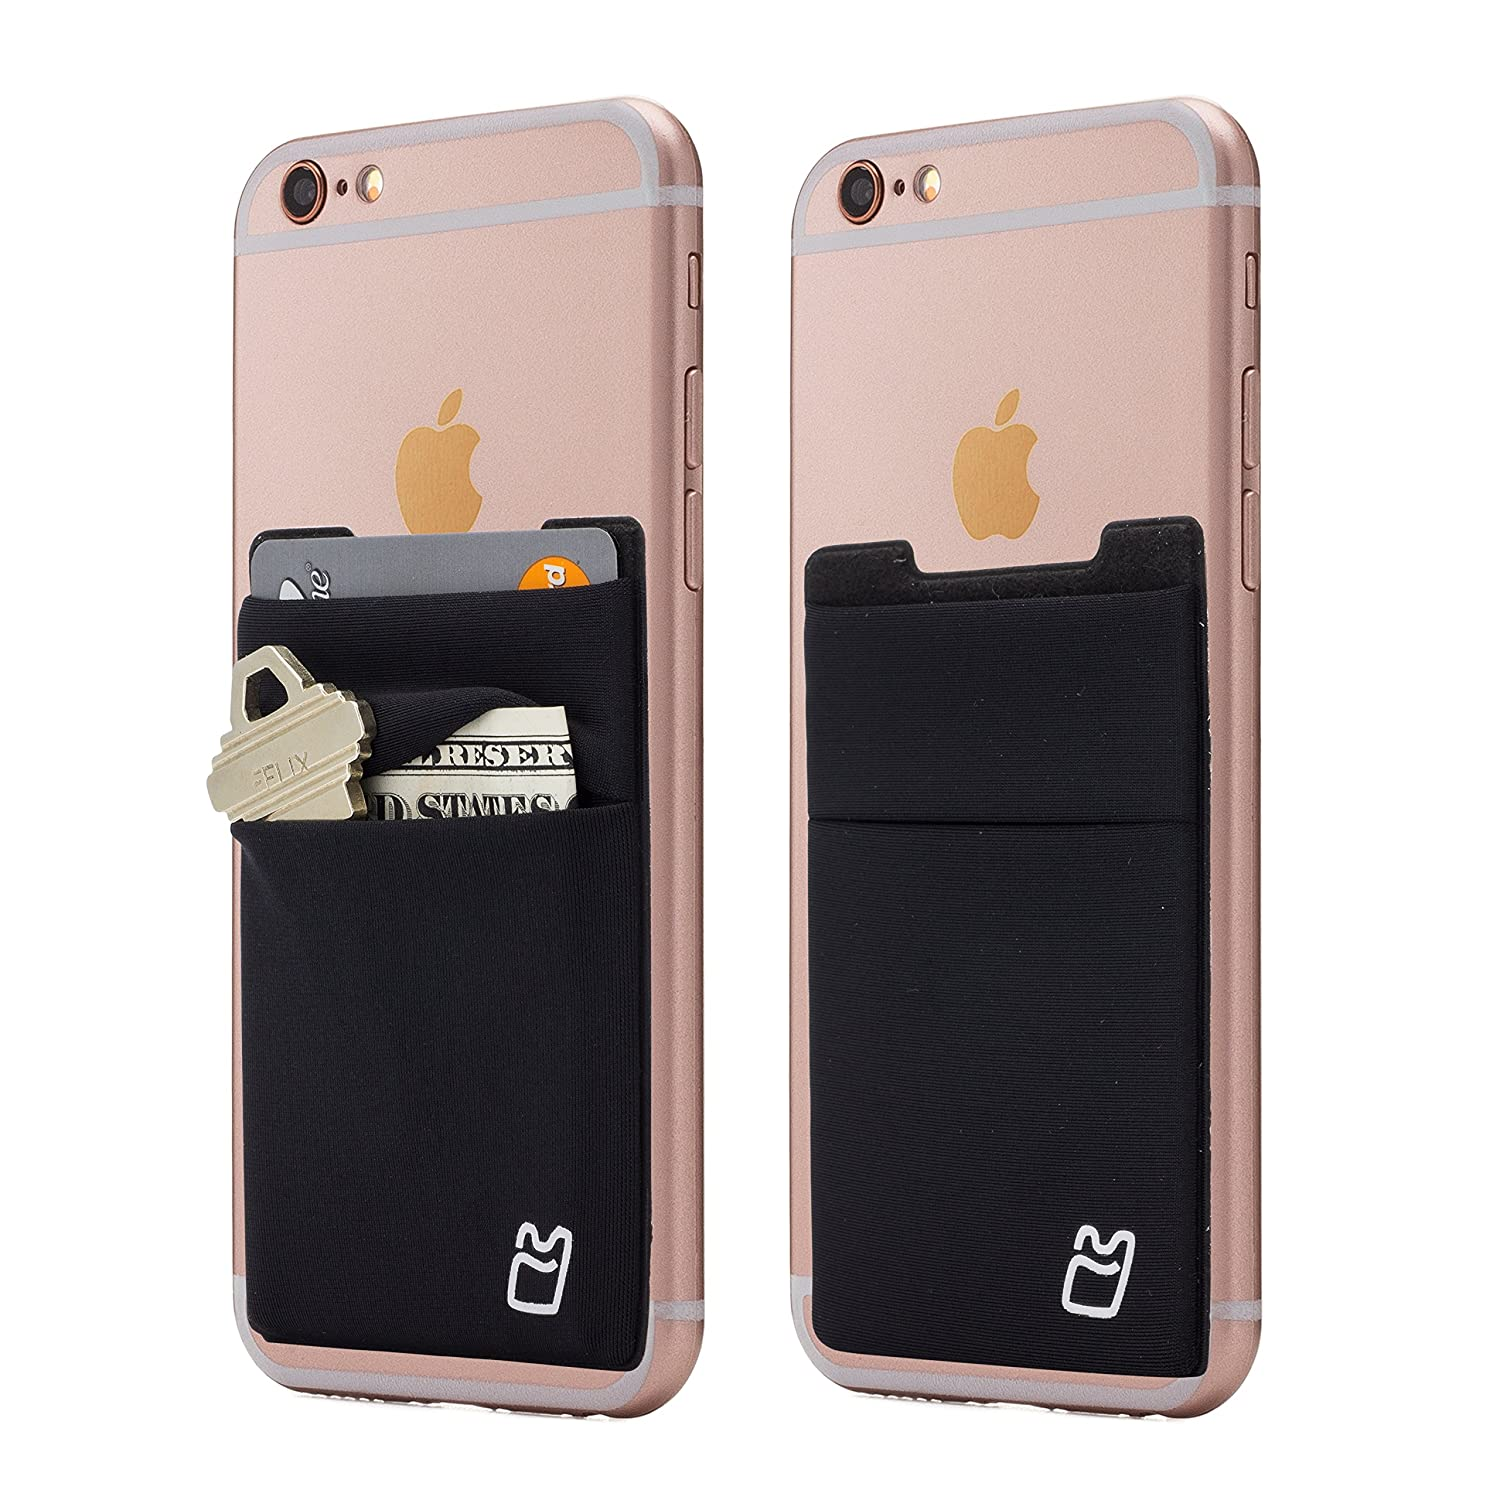 Cell Phone Card Holder >> Two Stretchy Cell Phone Stick On Wallet Card Holder Phone Pocket For Iphone Android And All Smartphones Black